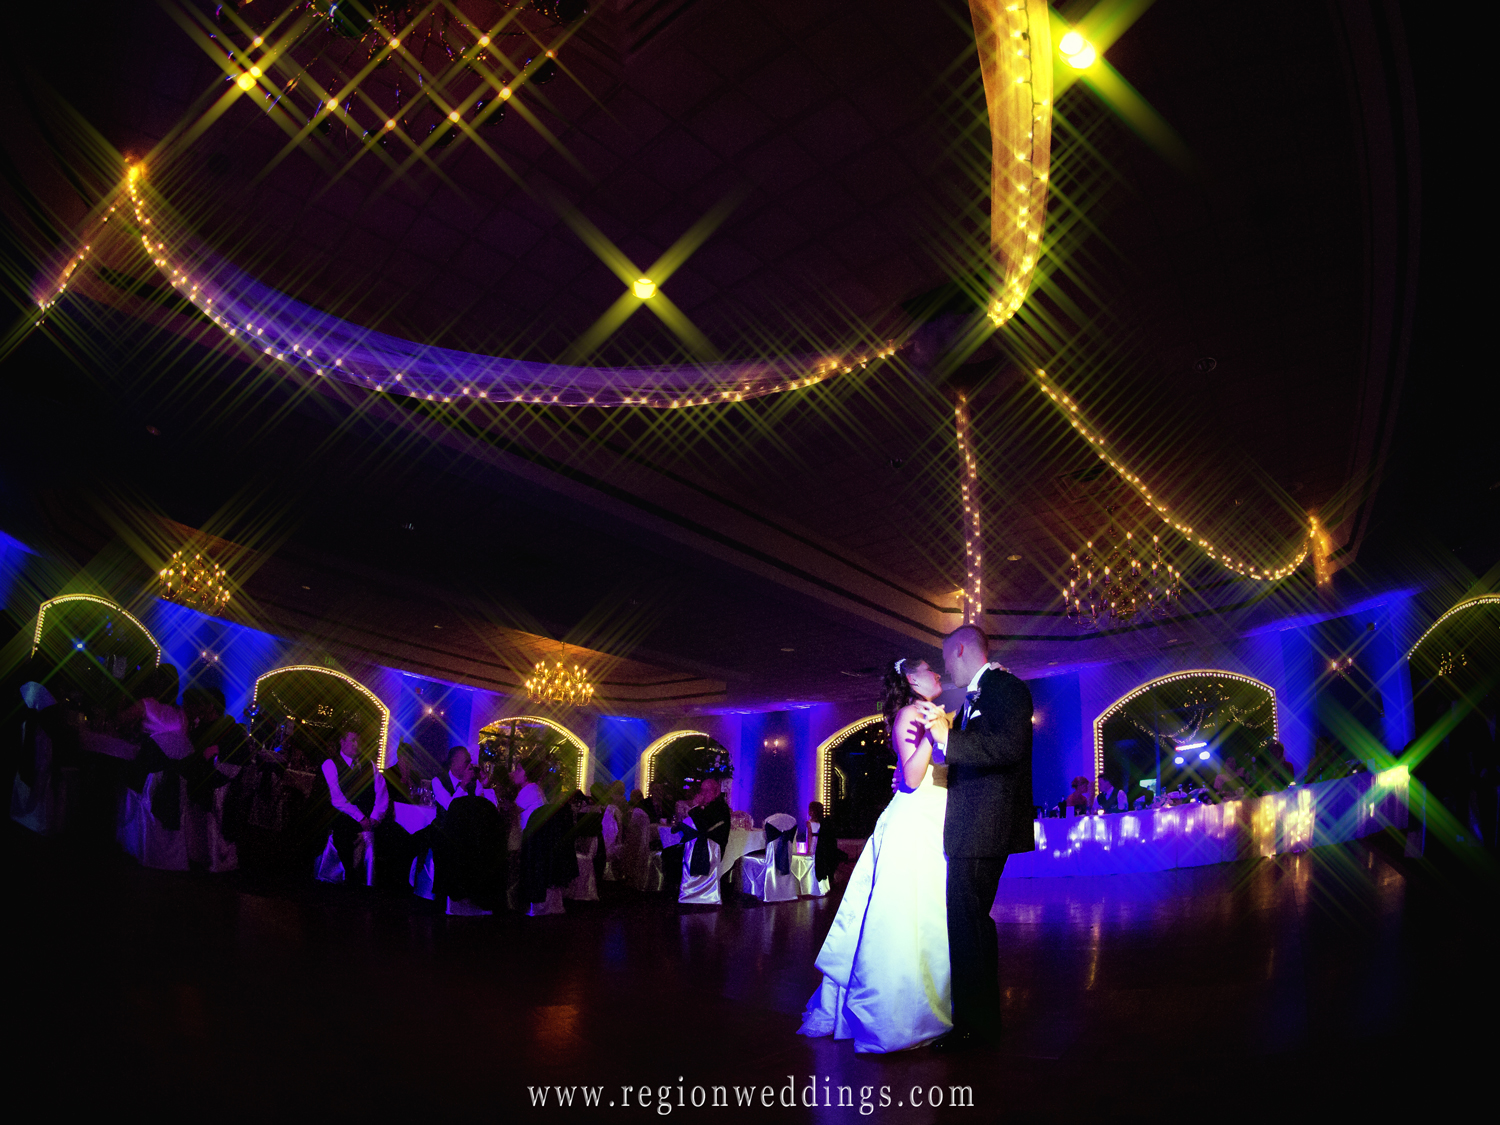 Dancing with the stars style wedding reception at Cloister in the Woods banquet hall in Munster.